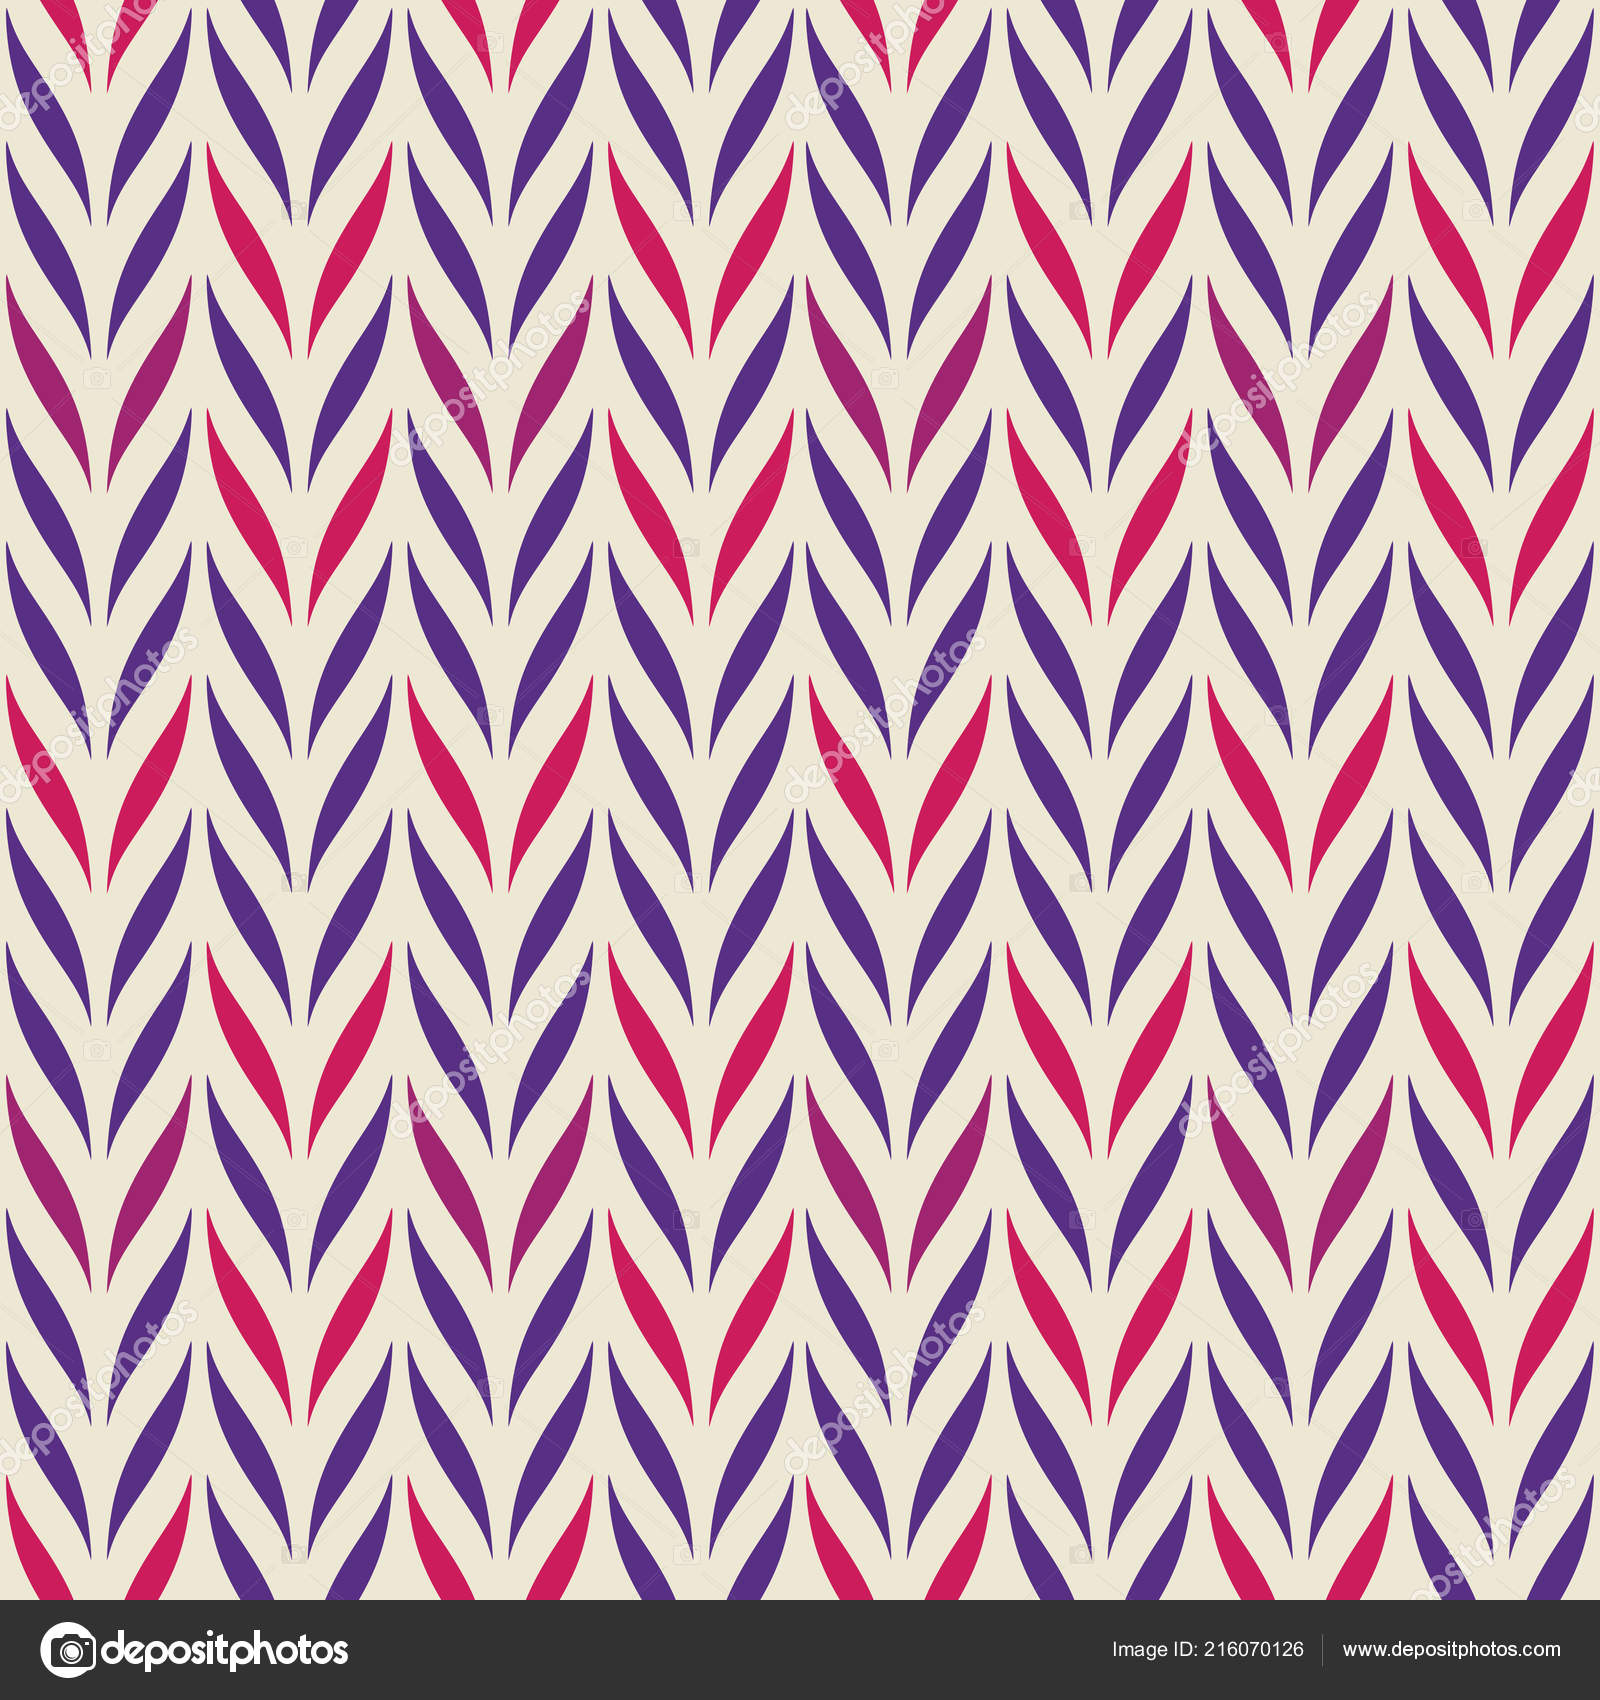 Seamless Vector Chevron Pattern Abstract Floral Elements